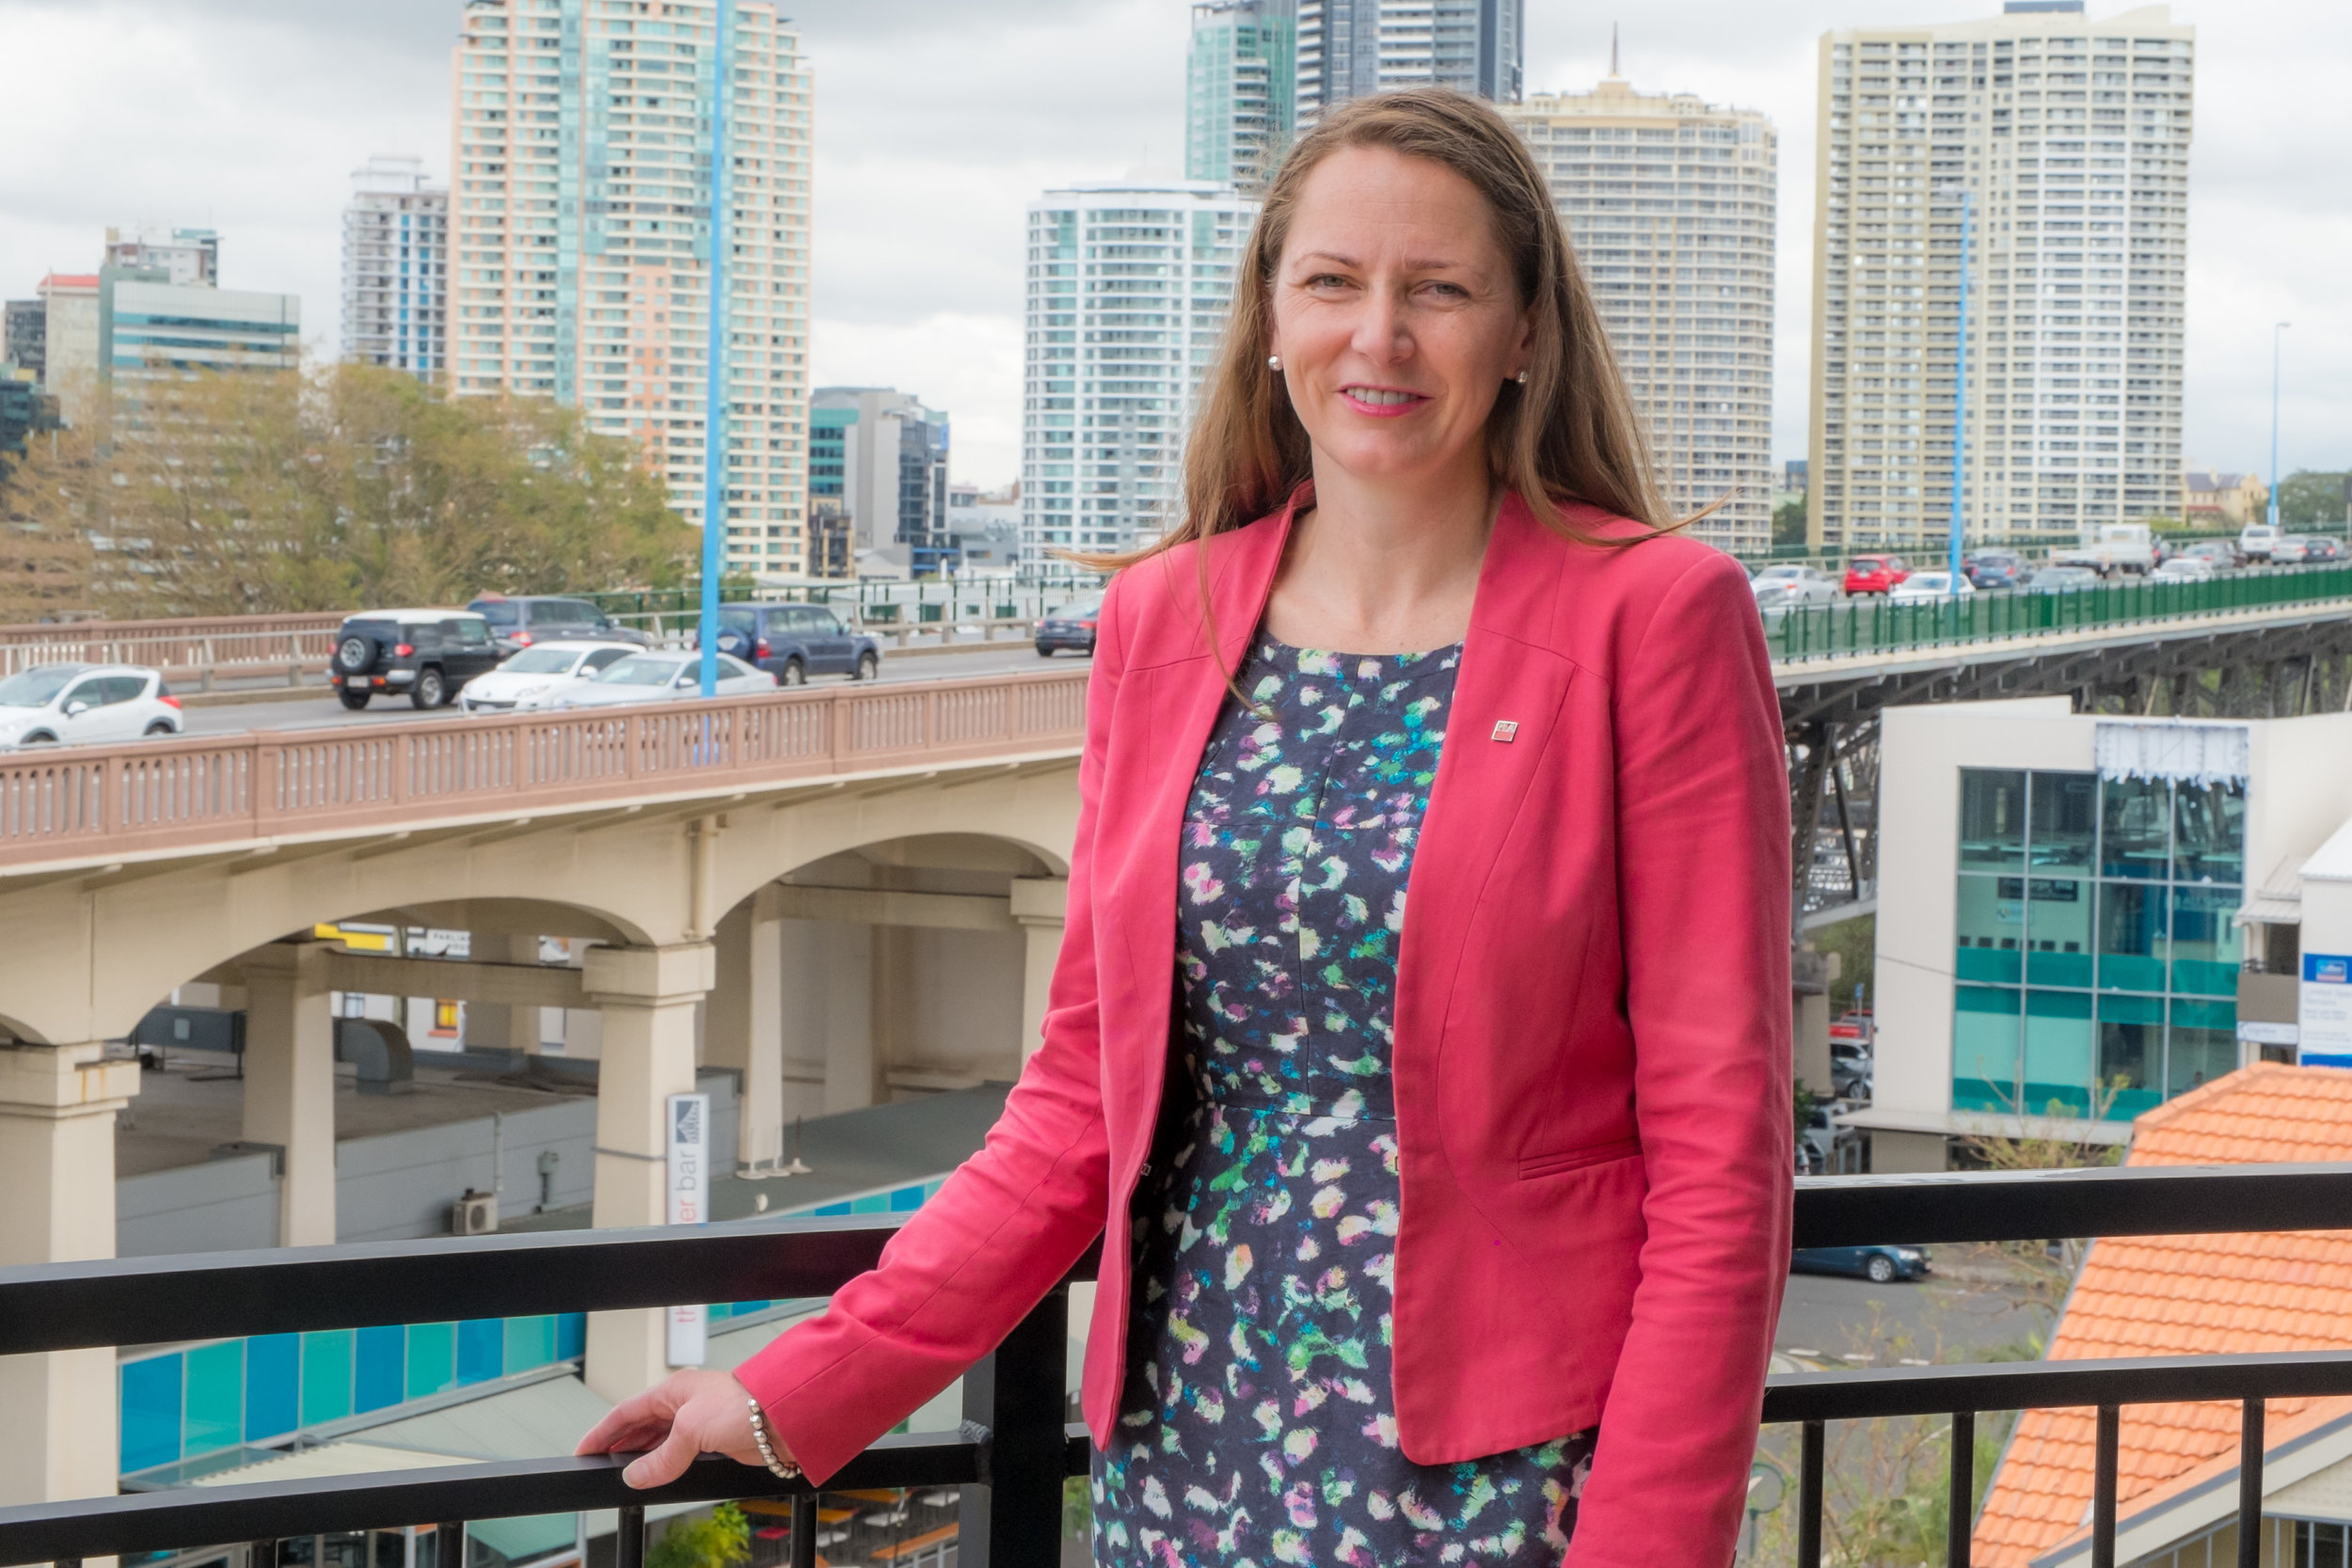 Kirsty Kelly - Strategy, management and policy professional providing leadership to support better community and urban outcomes